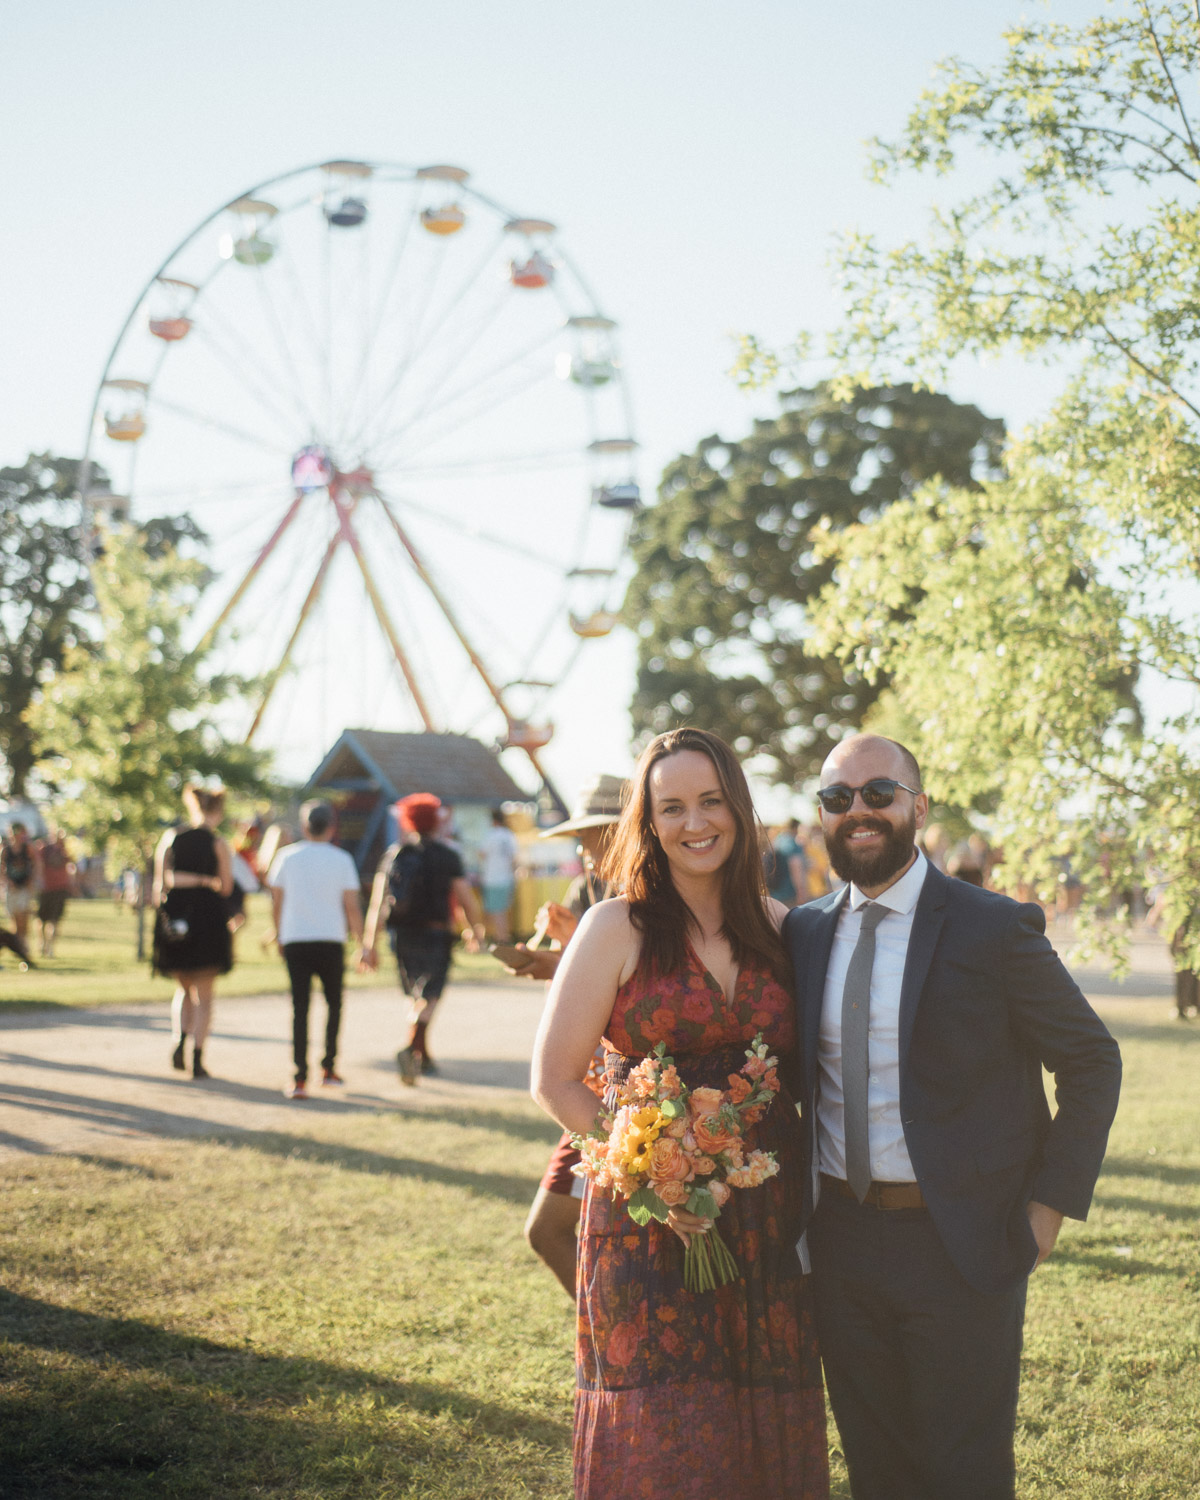 bonnaroo-couple Bonnaroo Music Festival Wedding | James and Jen